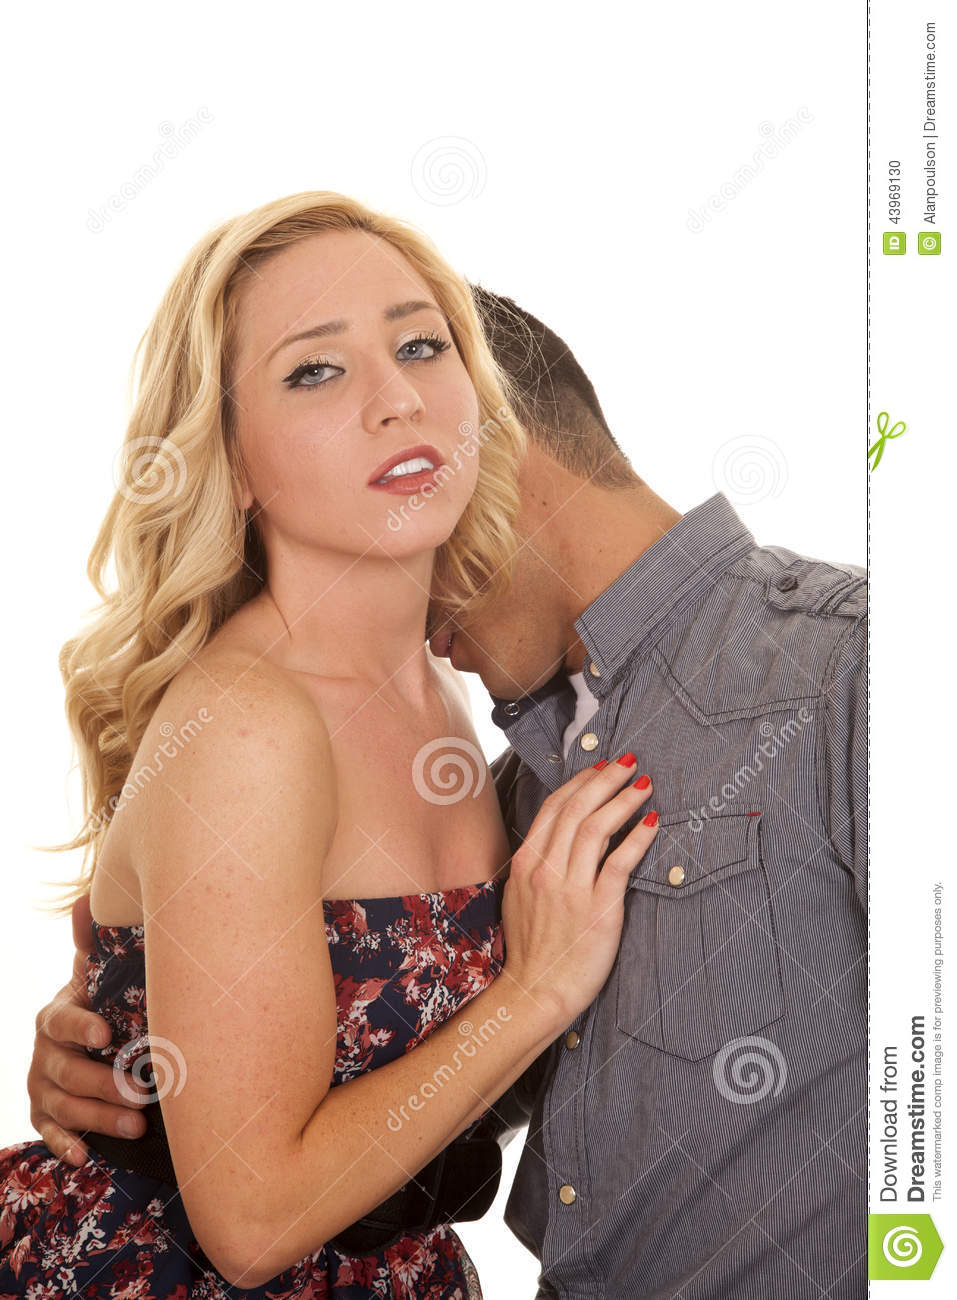 How to kiss a girl in her neck